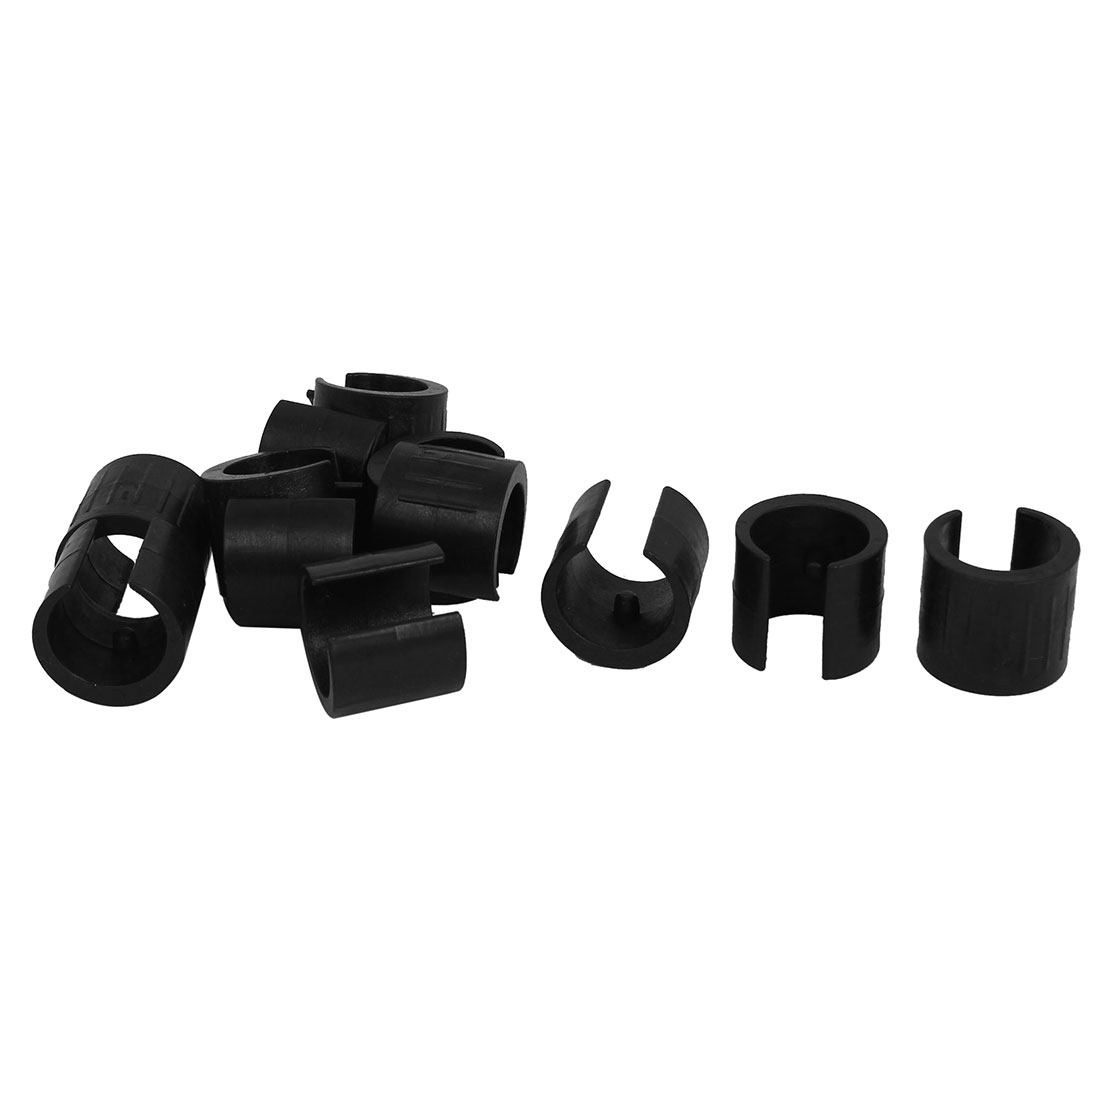 21mm Dia. Nonslip Plastic Round Pipe Clamp Foot Pads for Chair 12Pcs Black